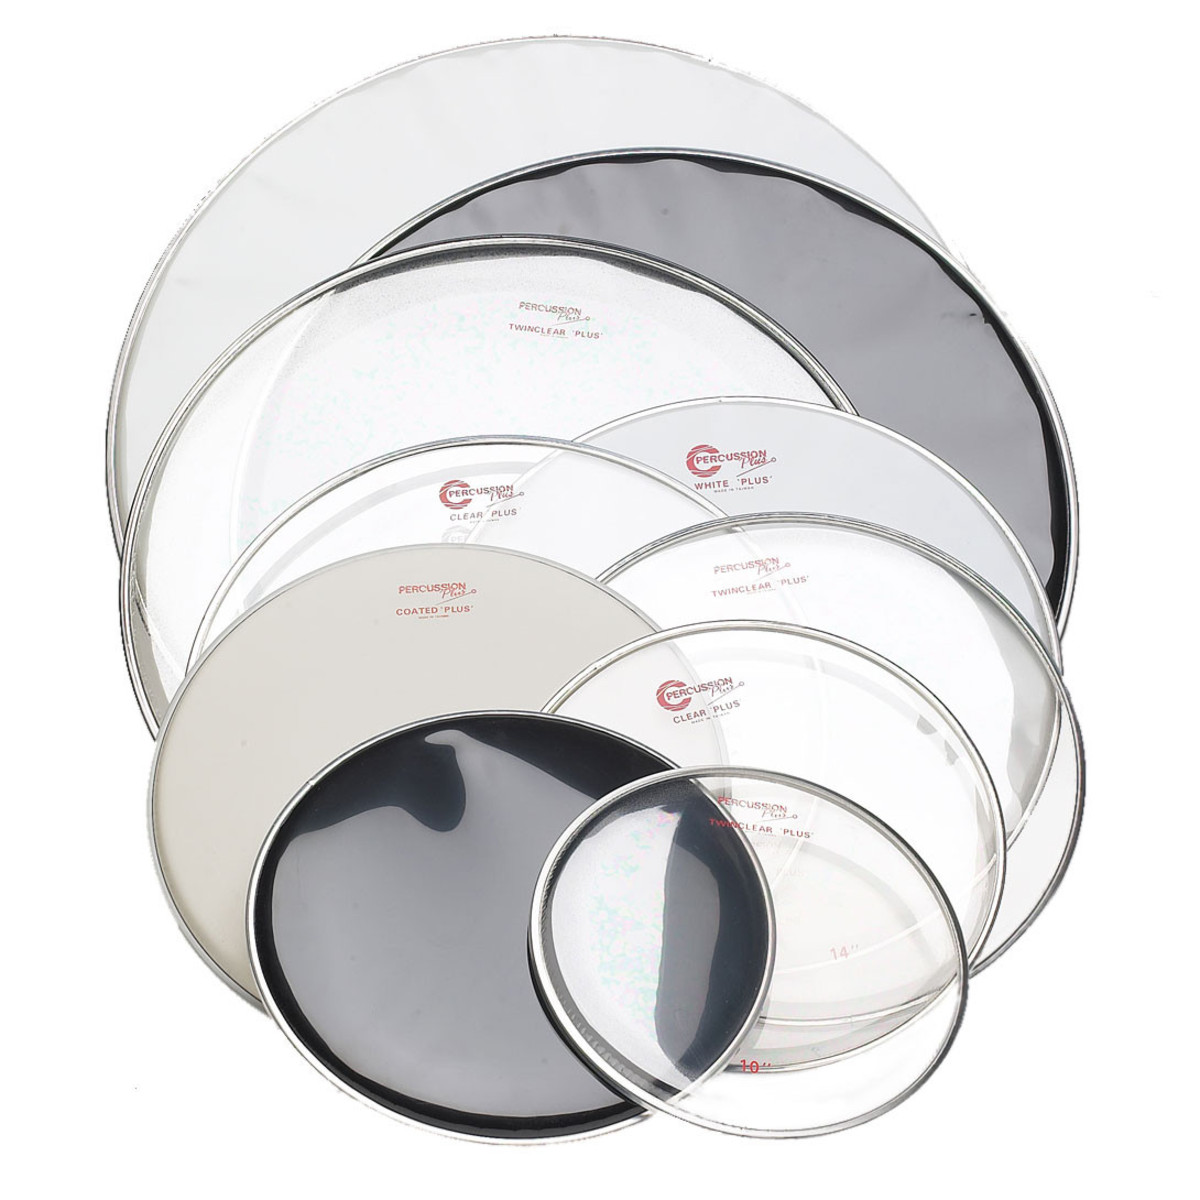 percussion plus drum head tom twinclear plus 14 35 cm at gear4music. Black Bedroom Furniture Sets. Home Design Ideas